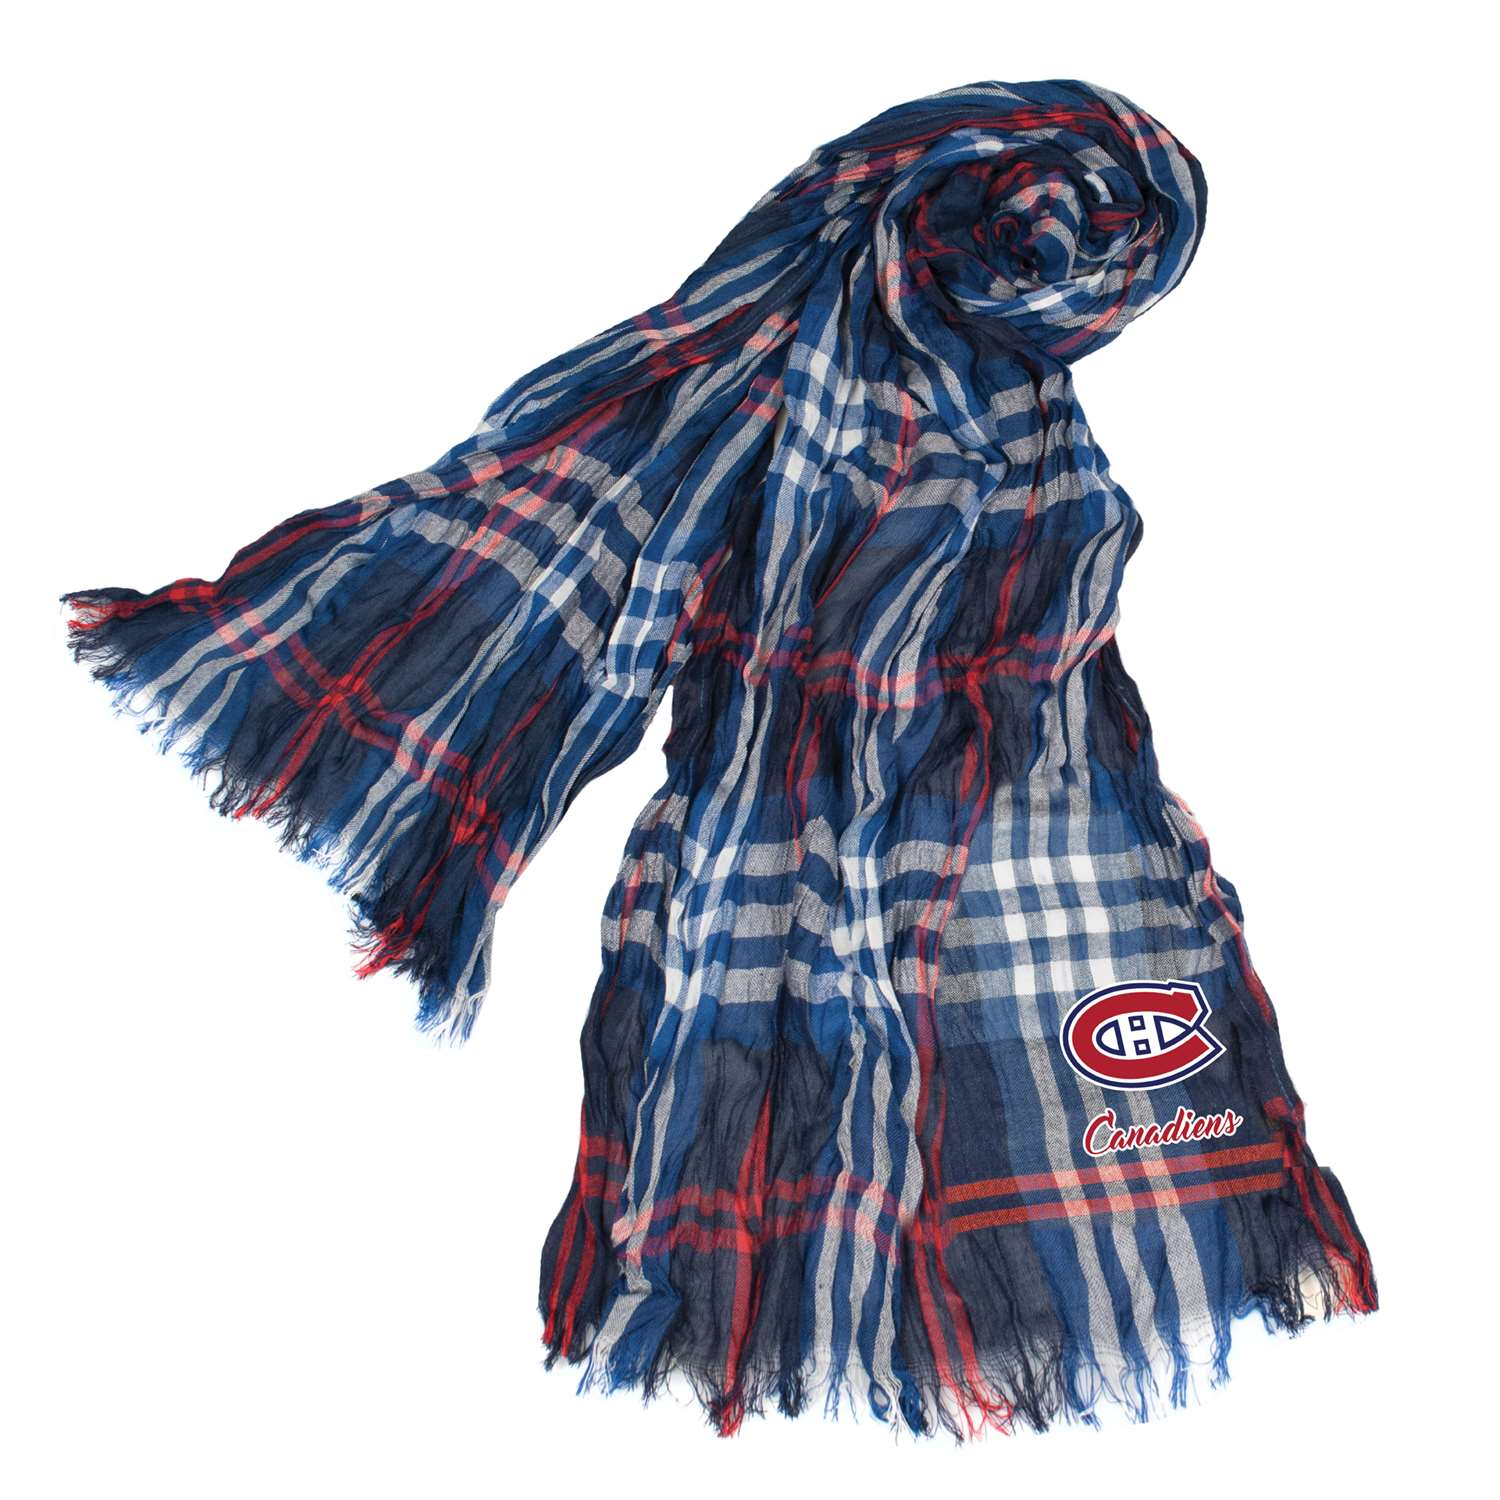 Nhl Hockey Montreal Canadiens Scarves - 500658-cand-nvred - Montreal Canadiens Crinkle Scarf Plaid 500658-CAND-NVRED